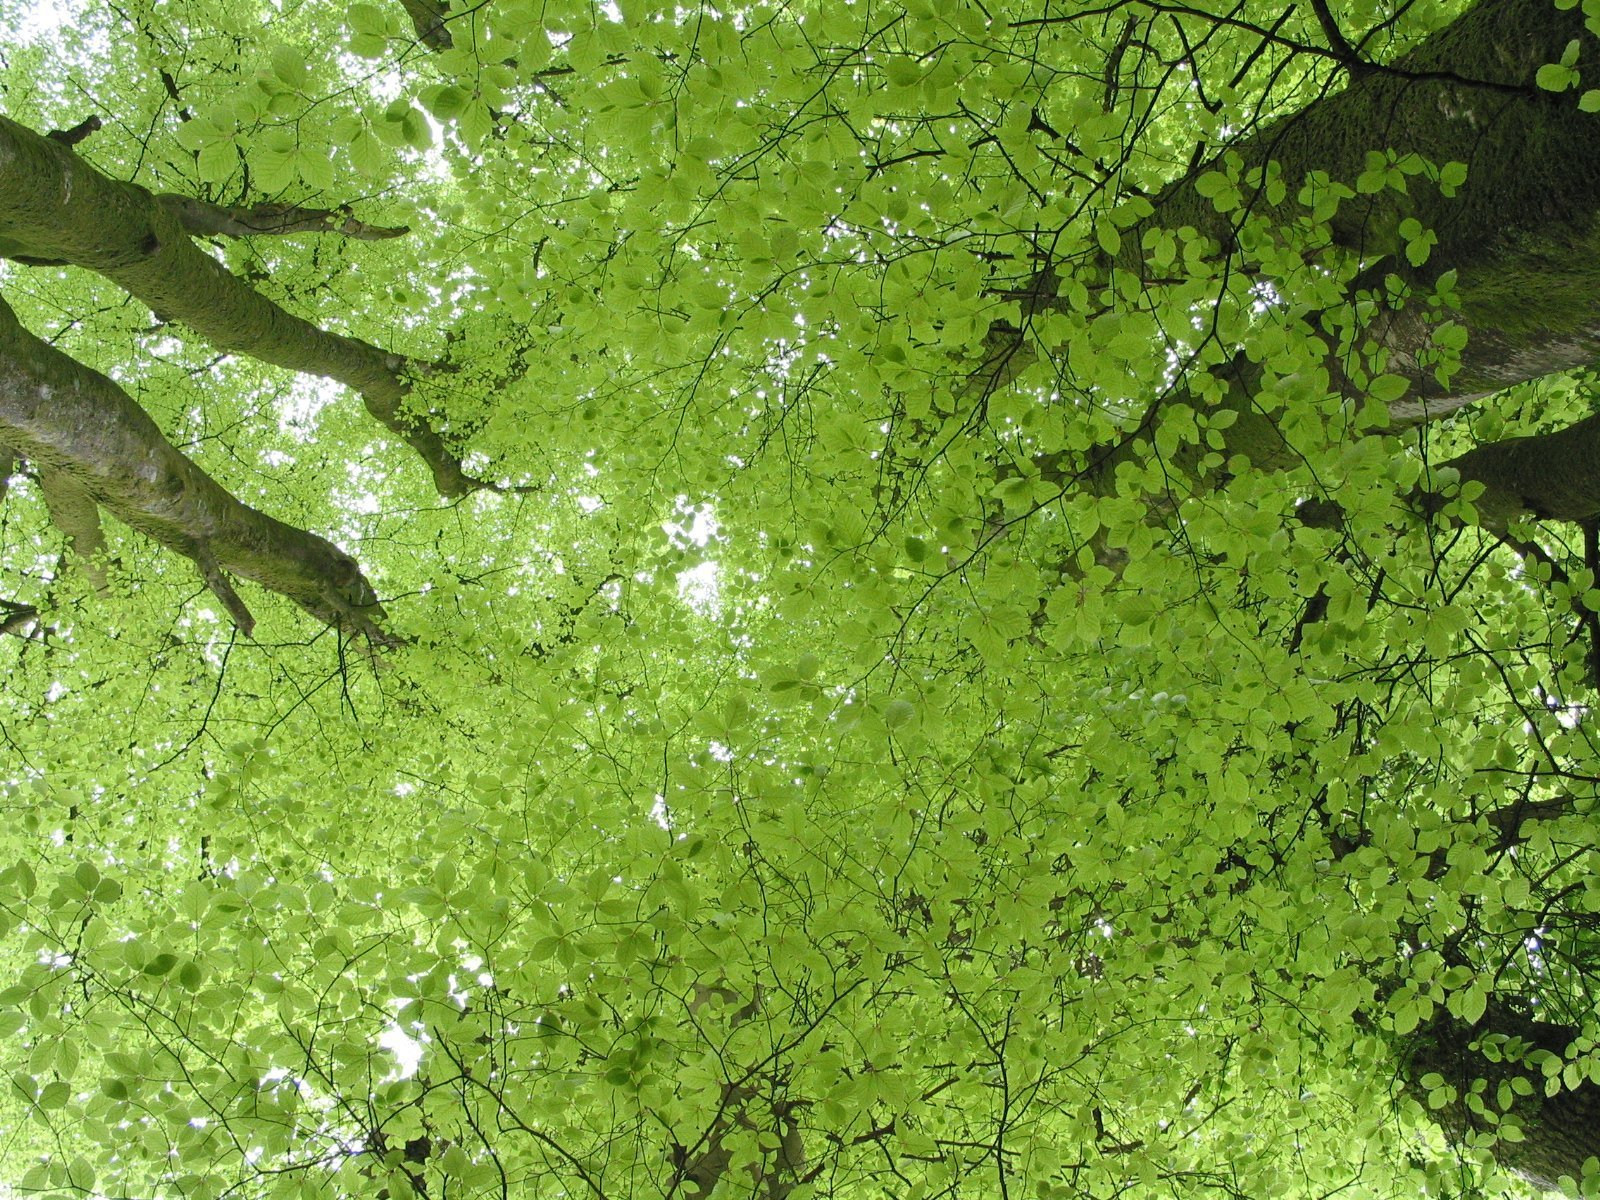 Tree canopy from beneath